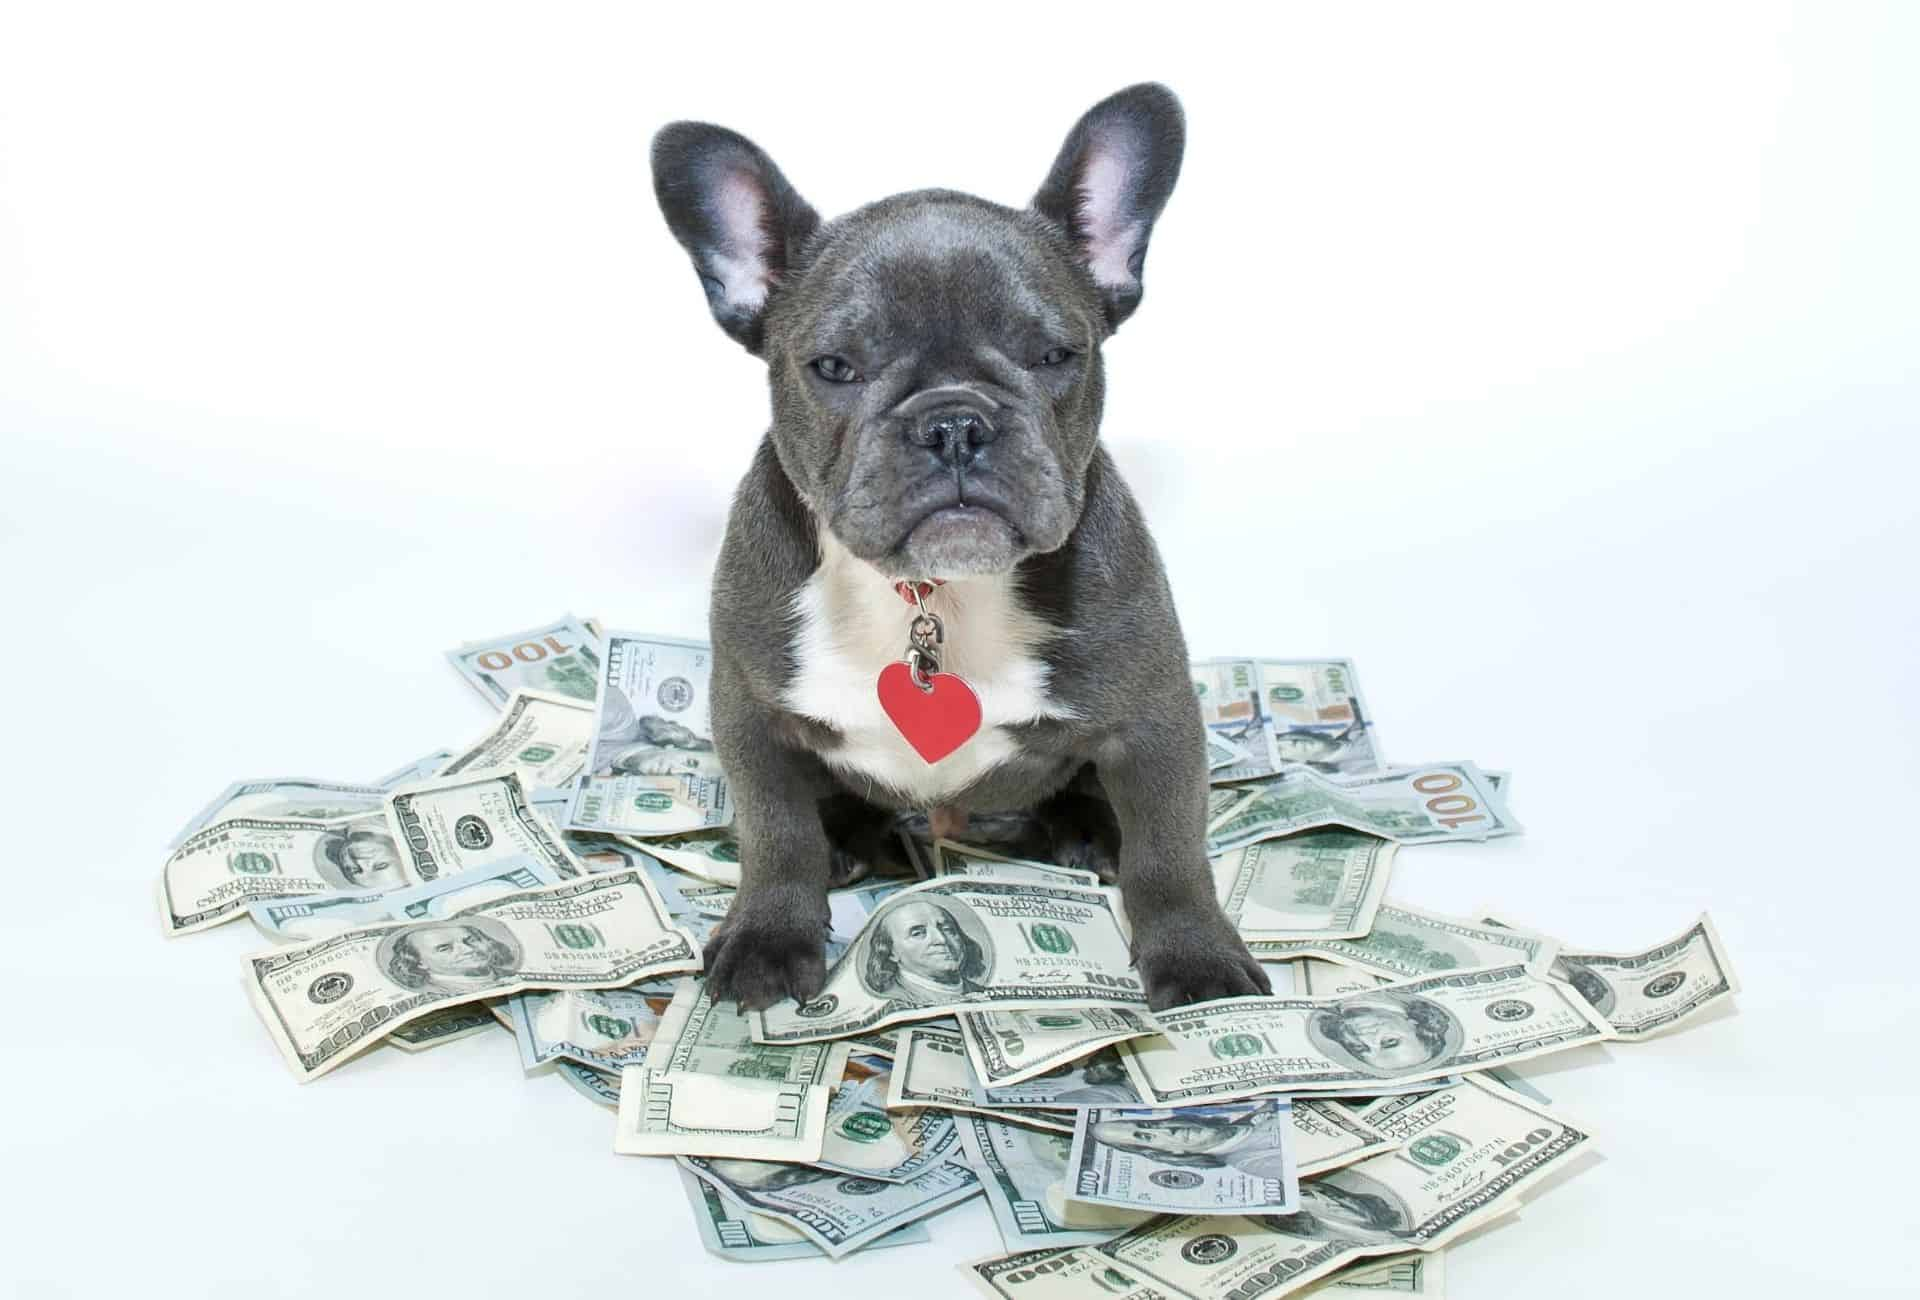 French Bulldog sits on a pile of money, signalling that breeders definitely can make money with breeding.